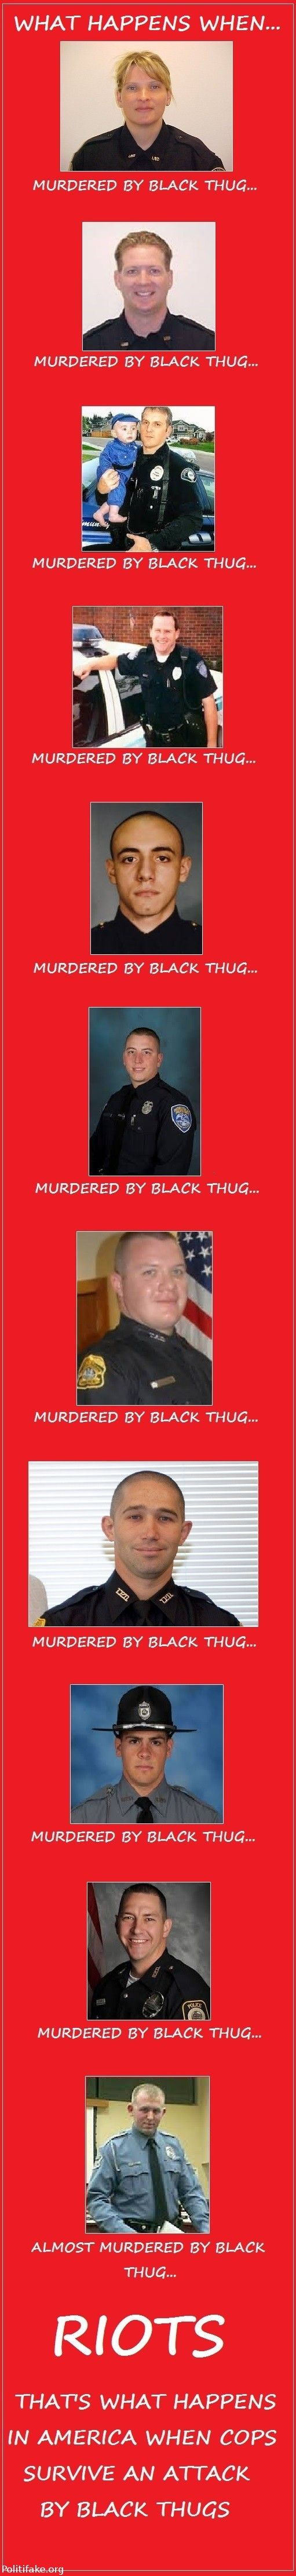 Cop almost murdered by Black Thug | OBAMA CARTOONS